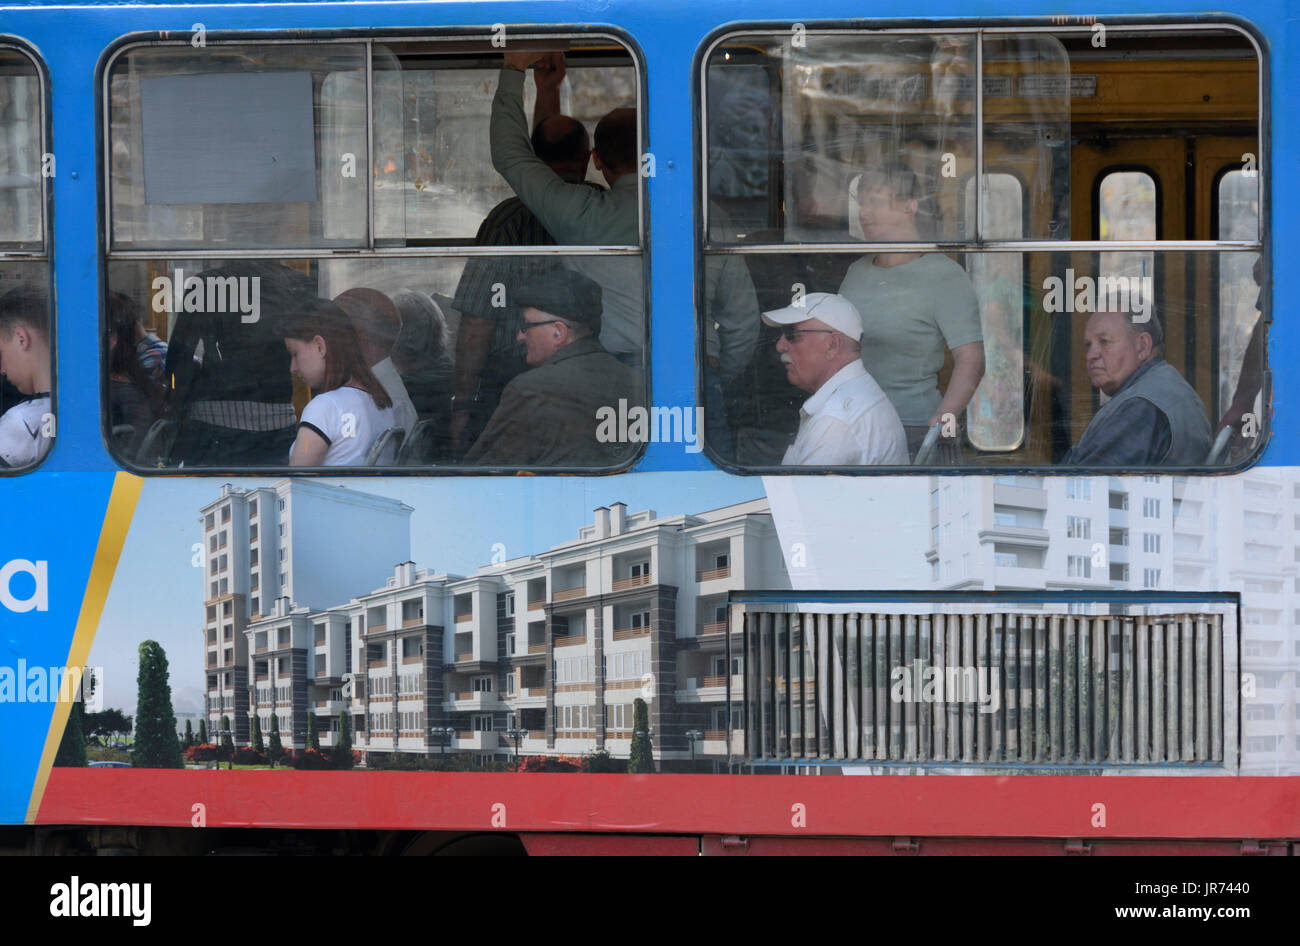 Passengers in a tram with advertisements on its side. Lviv, Ukraine - Stock Image